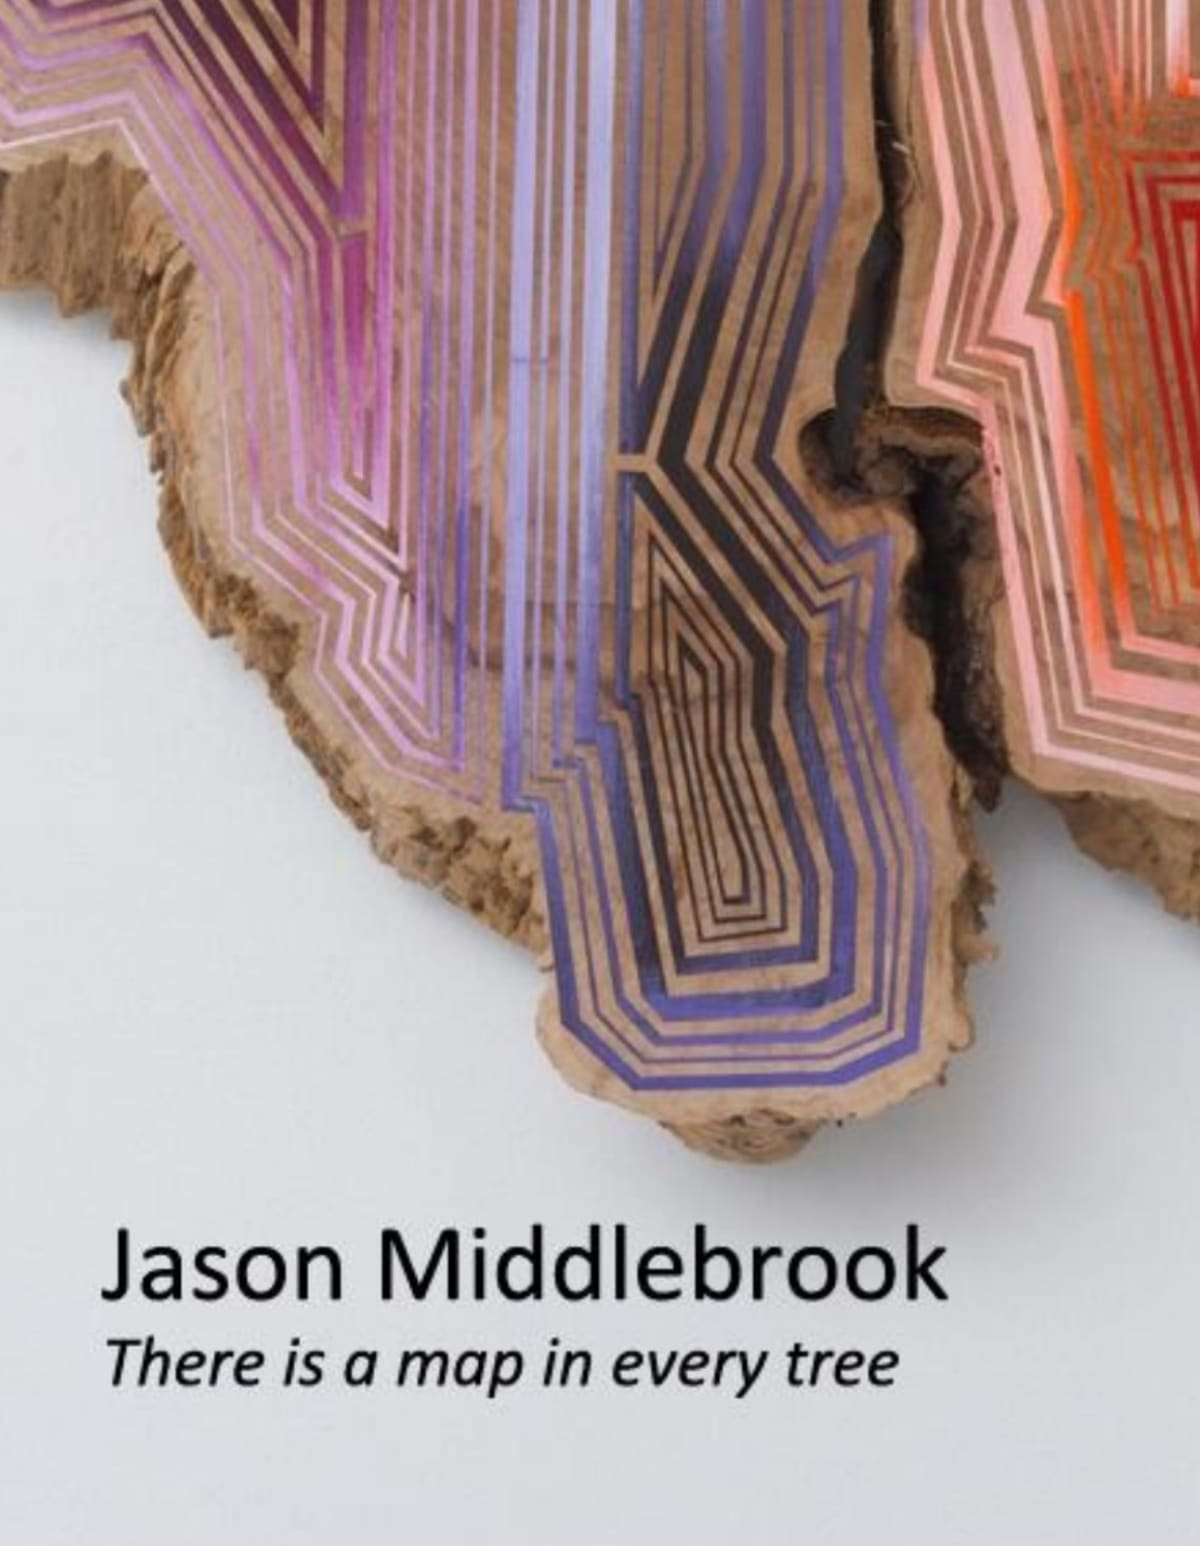 Jason Middlebrook: There is a map in every tree